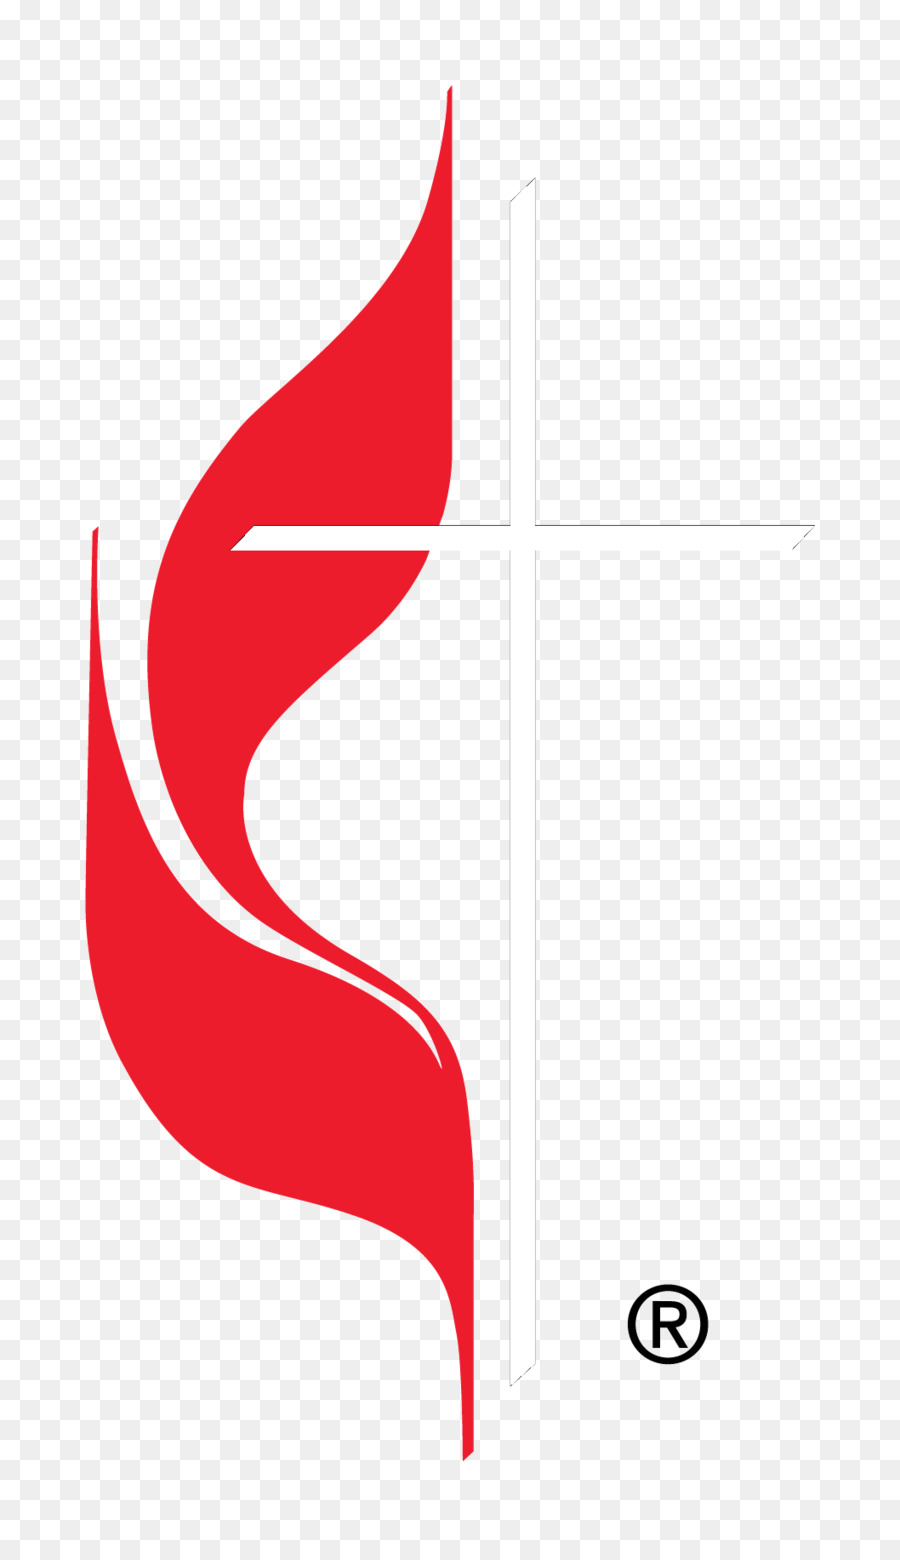 cross and flame methodism united methodist church christian cross rh kisspng com cross and flame logo united methodist church cross and flame logo to download pdf